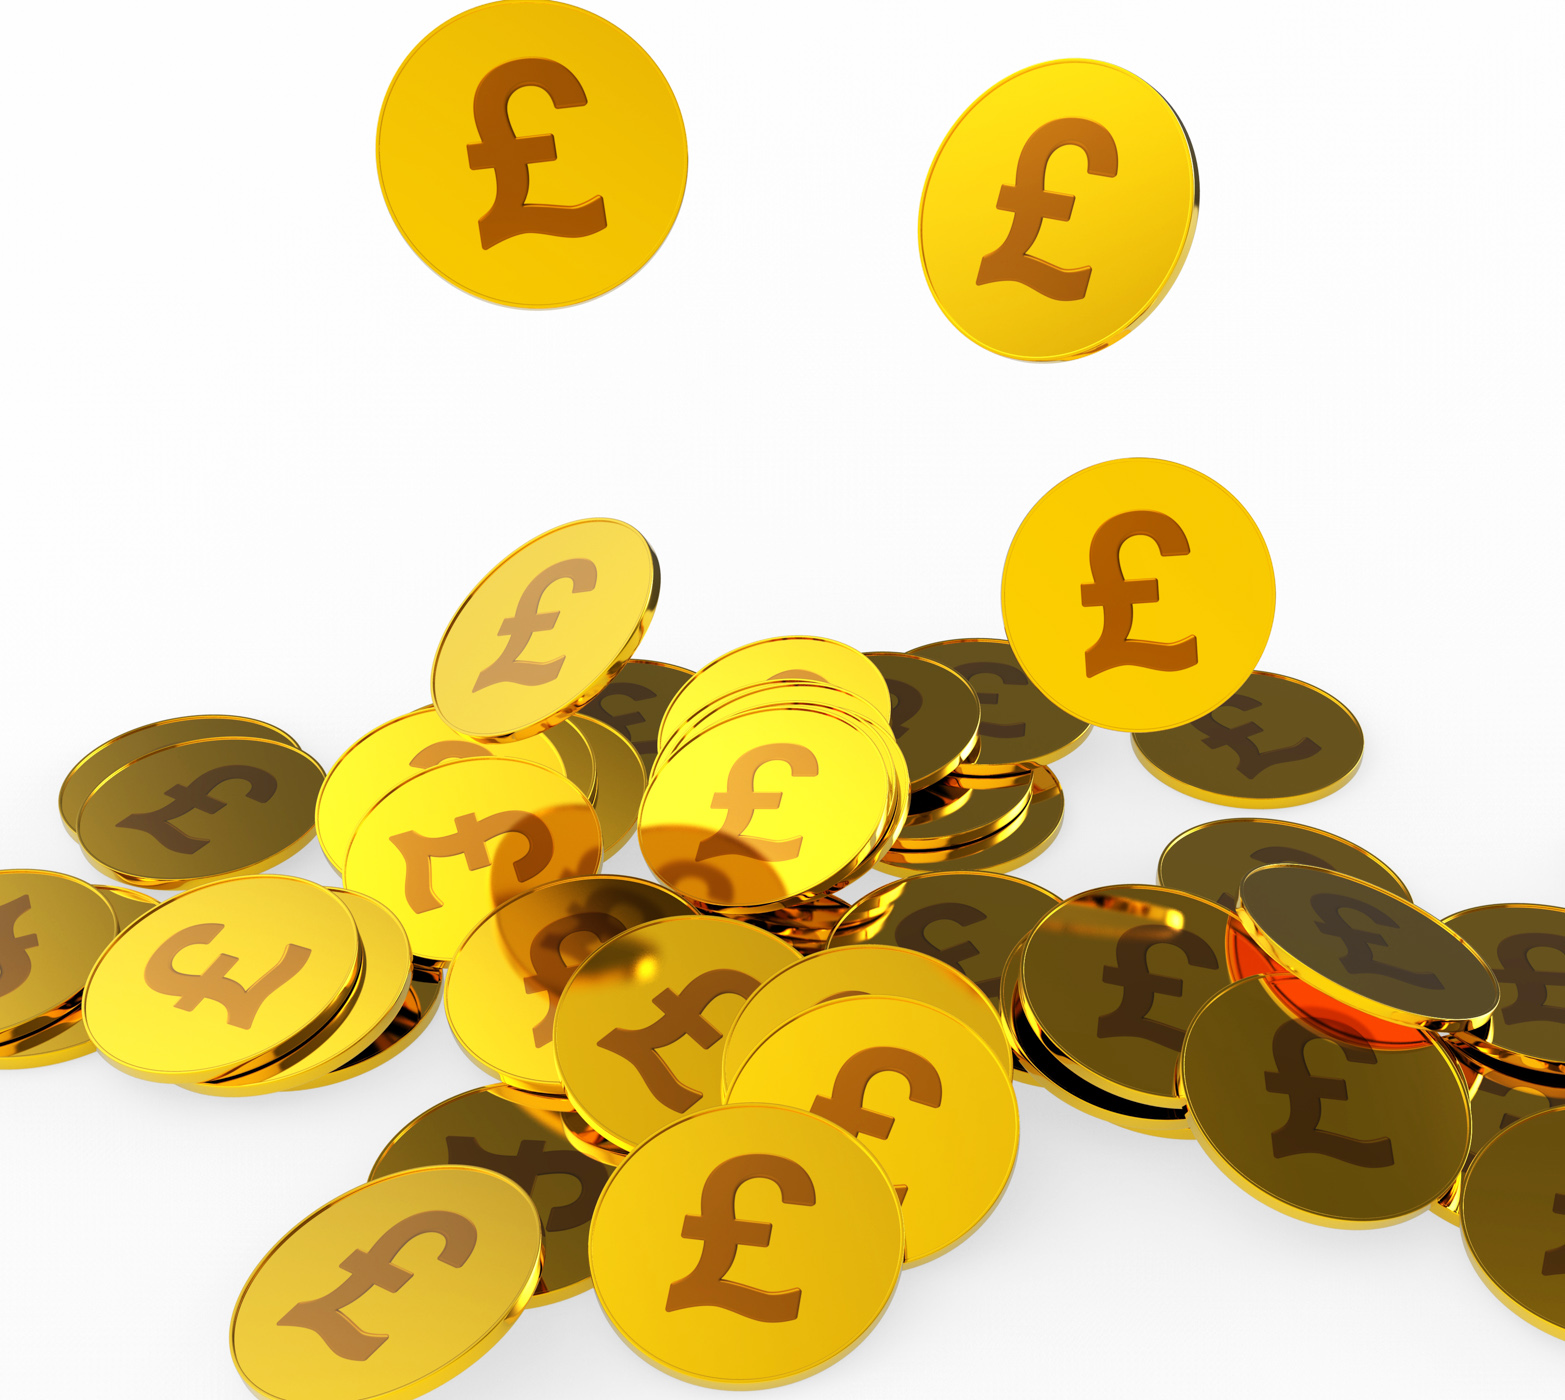 Pound coins shows british pounds and finance photo